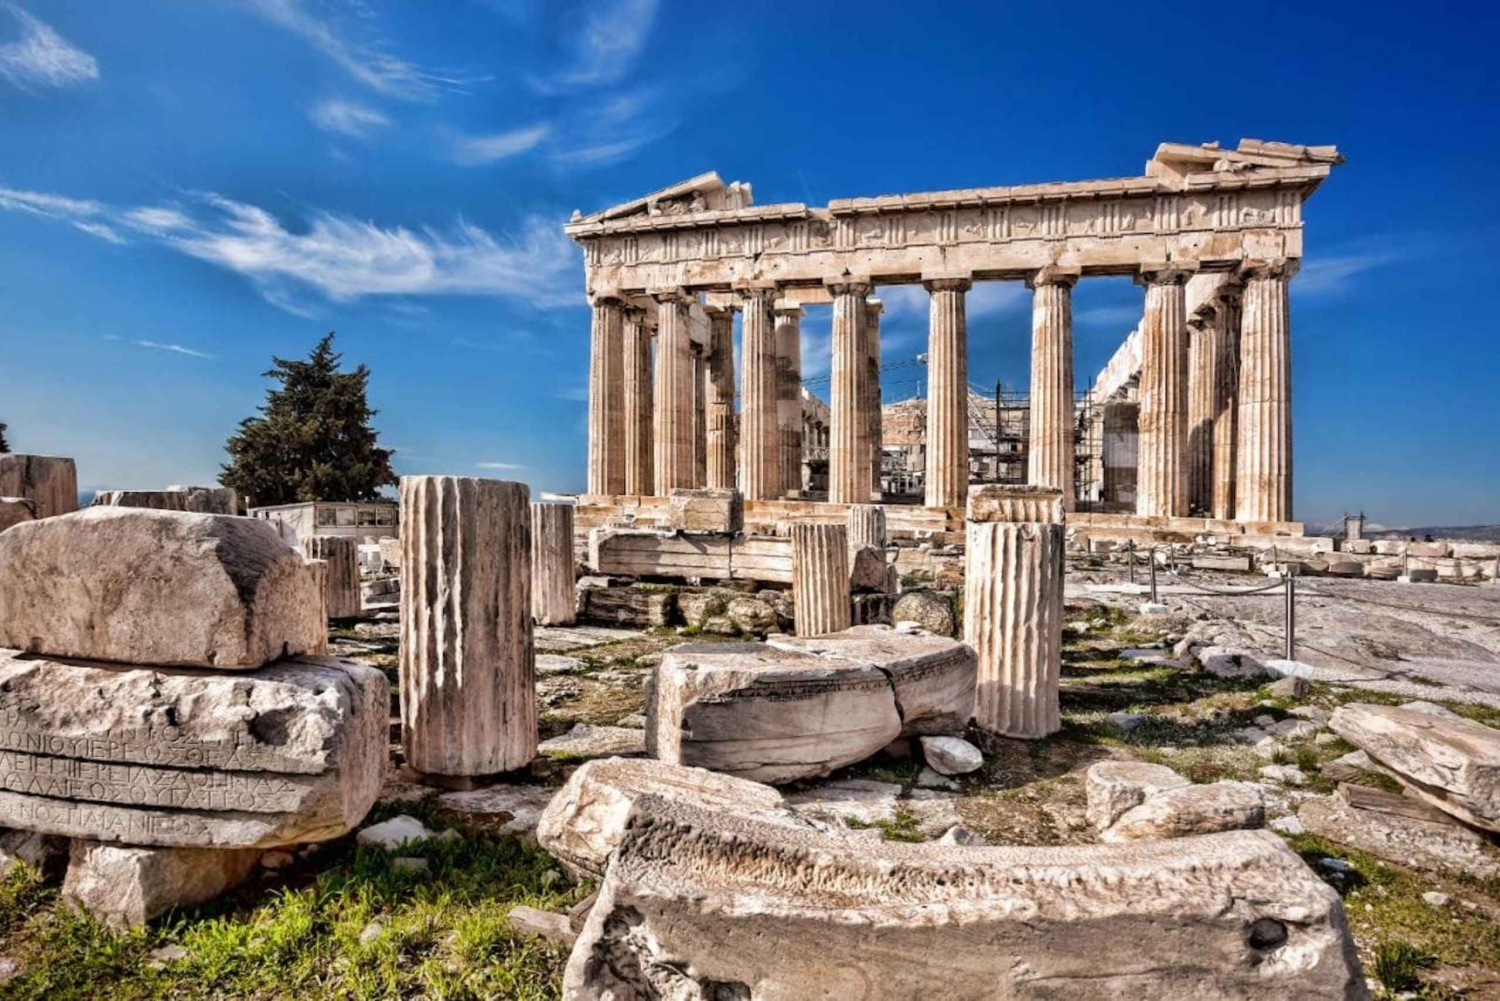 Acropolis Tour with Skip-the-Line Ticket